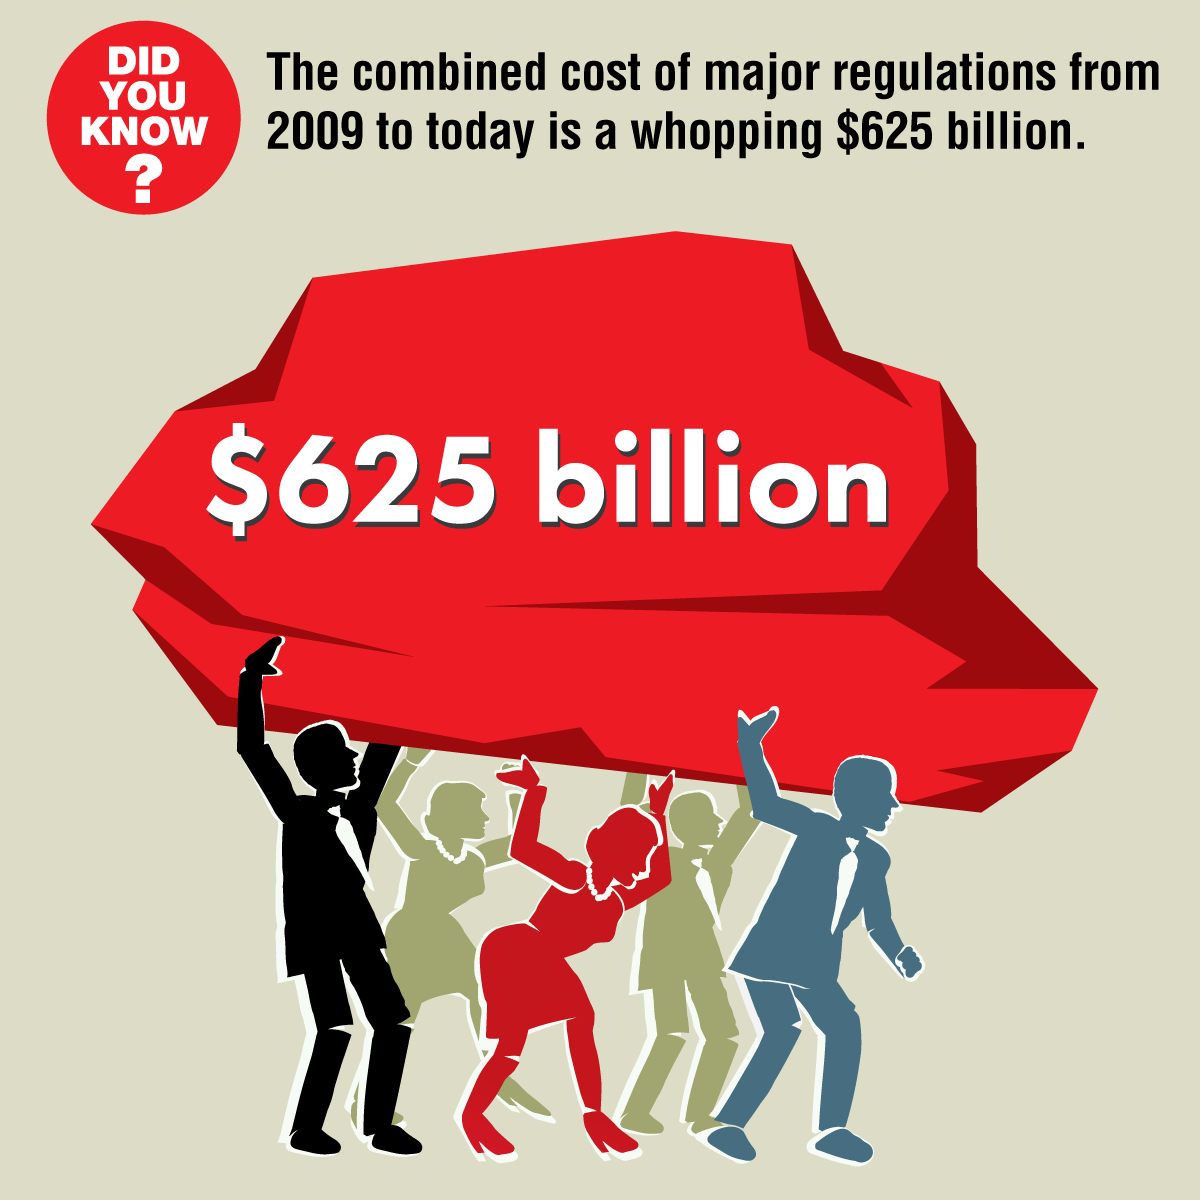 Did you know? The combined cost of major regulations from 2009 to today is a whopping $625 billion.